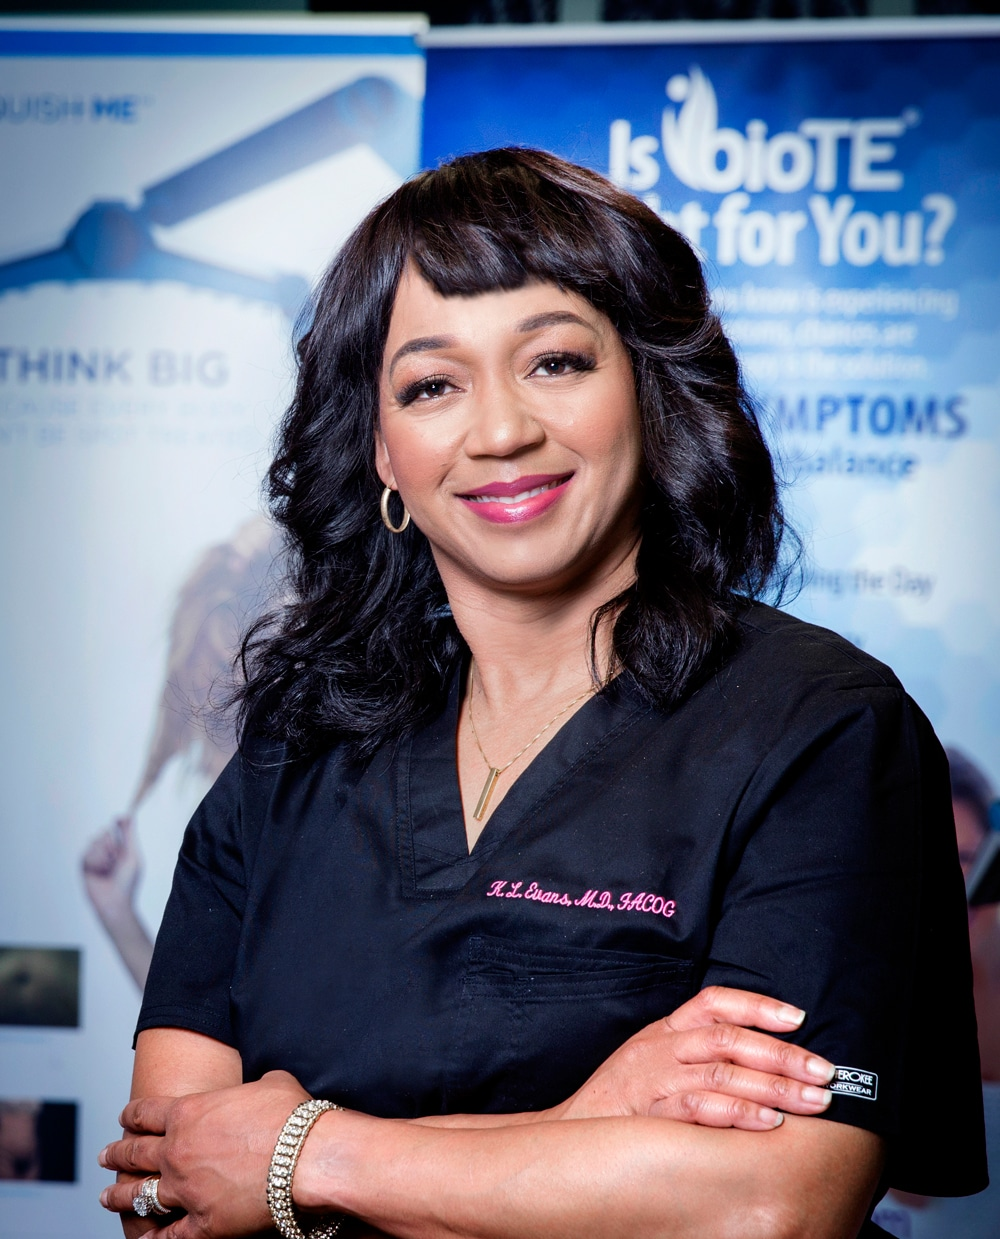 Dr. Kimberly L. Evans with Sugar Land Medical Spa in Sugar Land, Texas